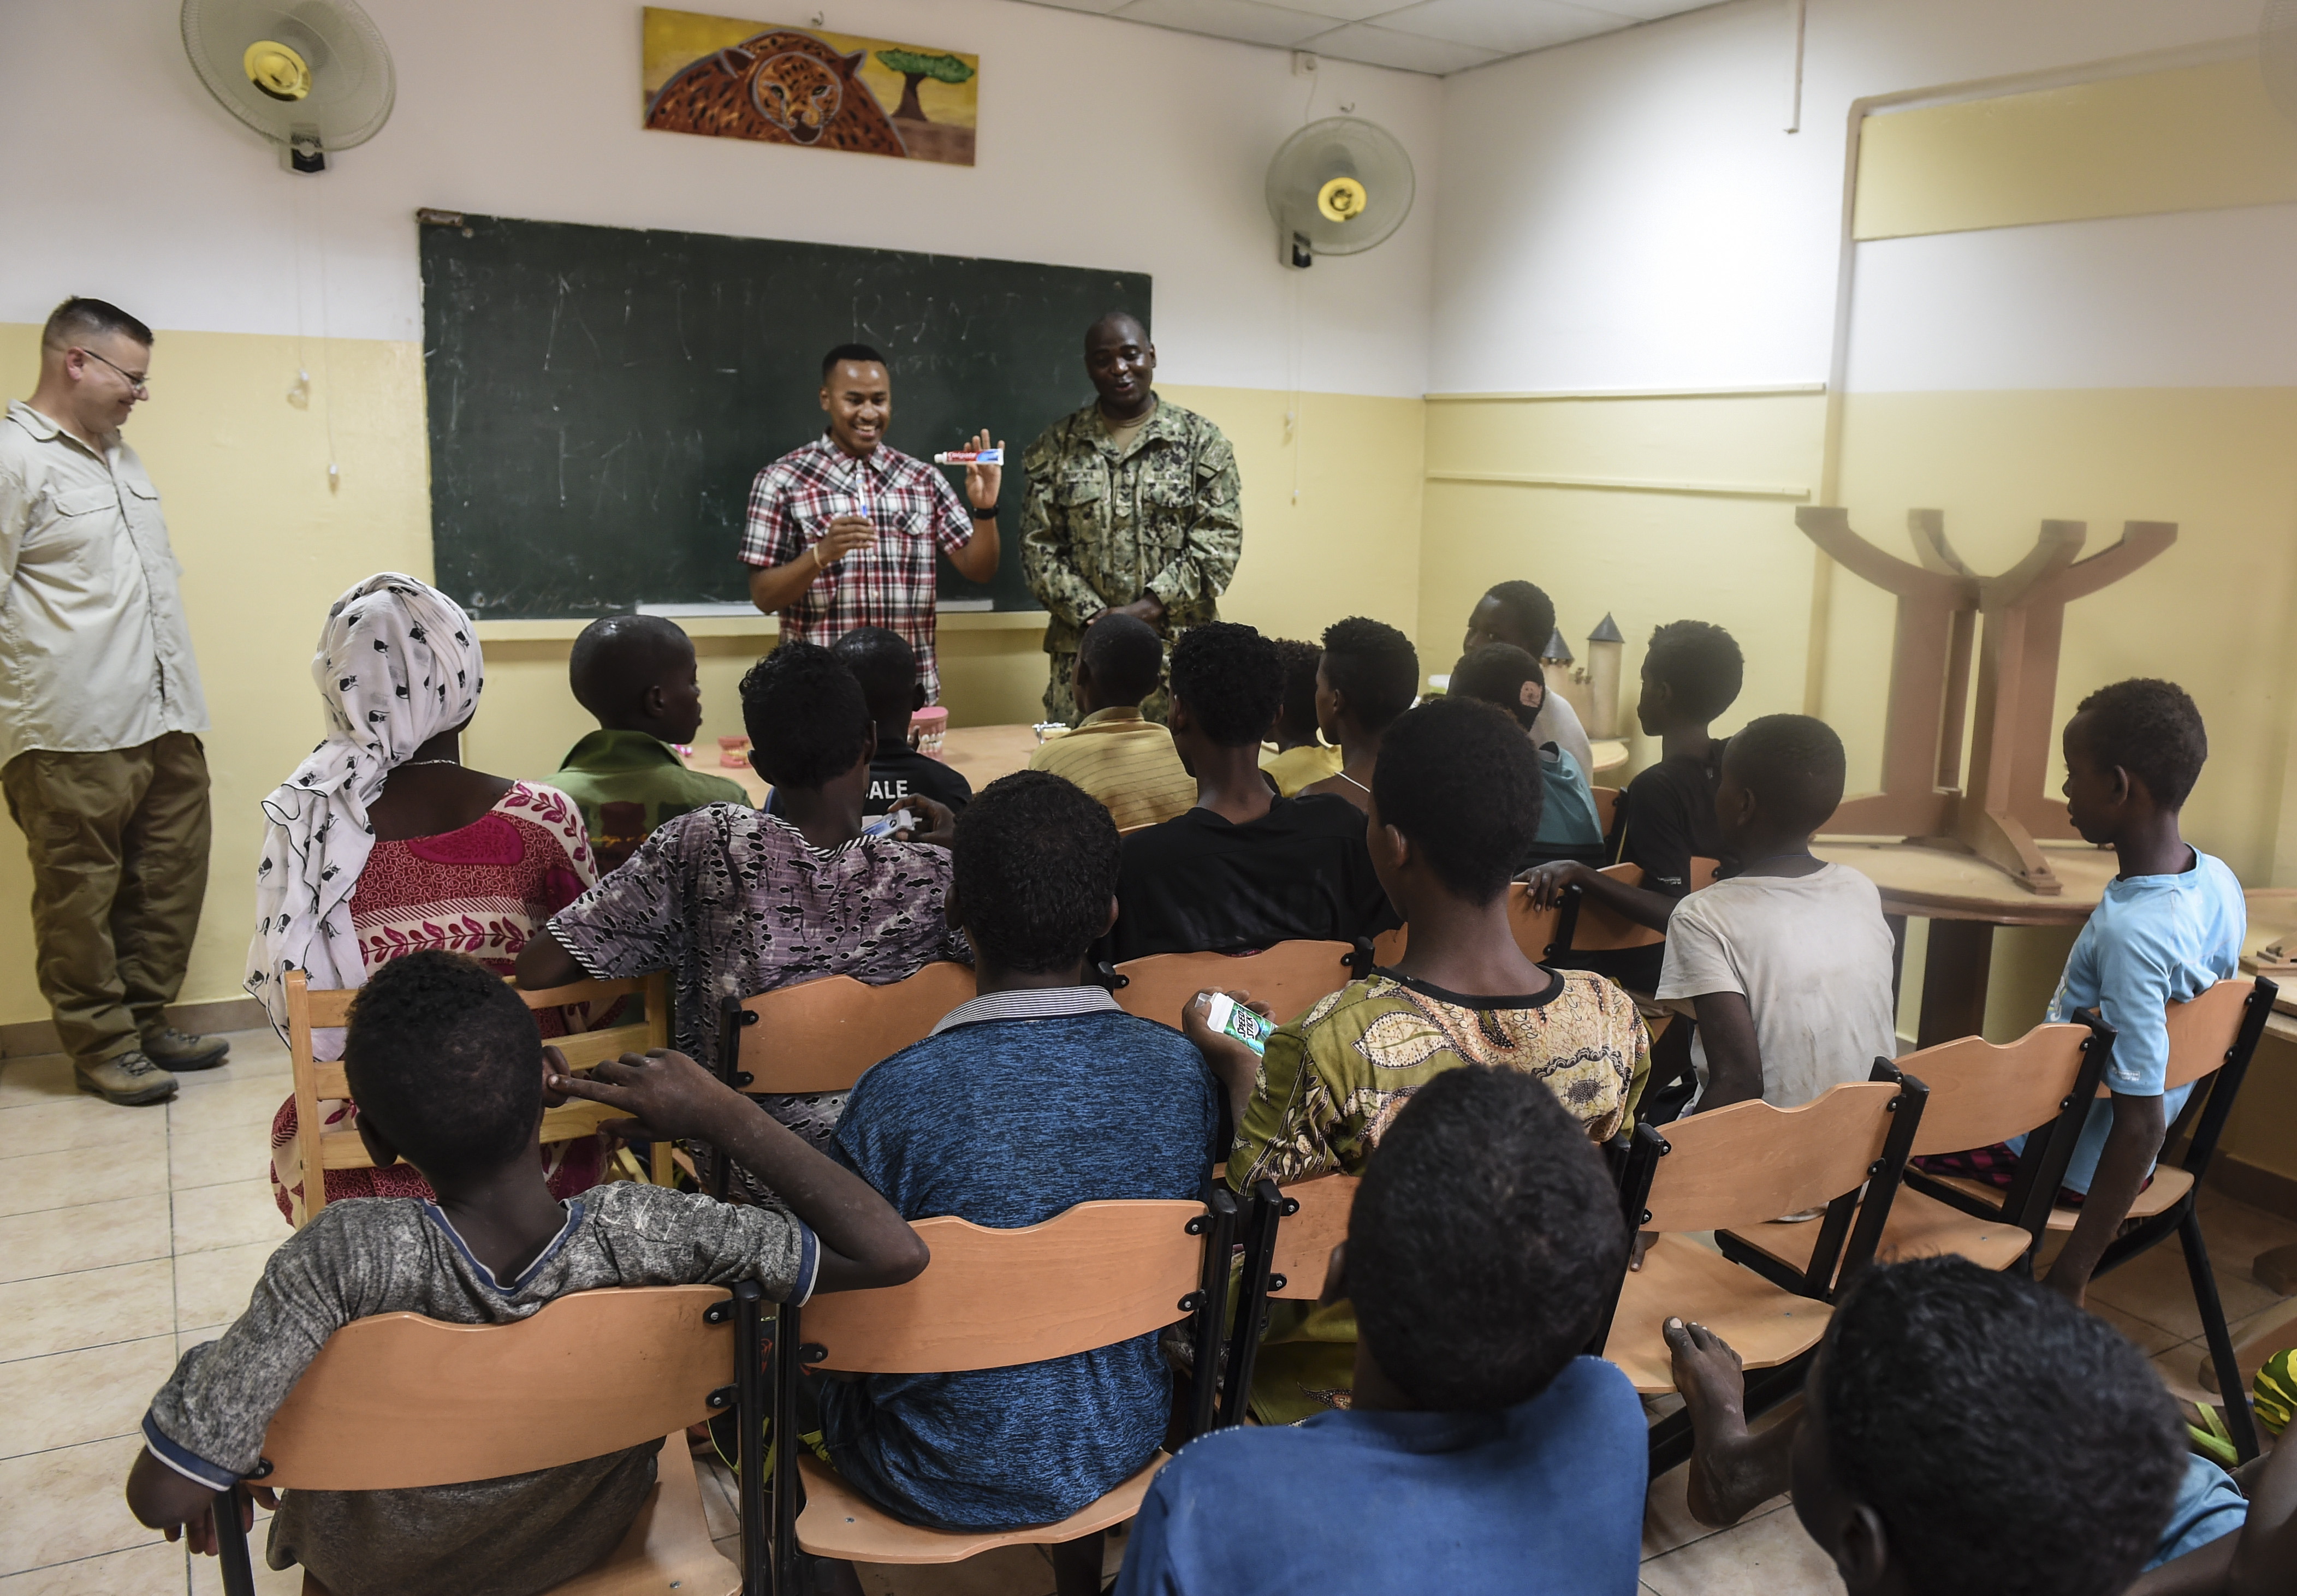 U.S. Army Sgt. Justin Wallace, a dental specialist with the 443rd Civil Affairs Battalion functional specialty team, shows children a tube of toothpaste during a dental demonstration in Djibouti City, Djibouti, Aug. 8, 2017. With demonstrations such as these, the team contributes to the Combined Joint Task Force-Horn of Africa's efforts to promote regional security, stability and prosperity. (U.S. Air Force photo by Staff Sgt. Eboni Prince)